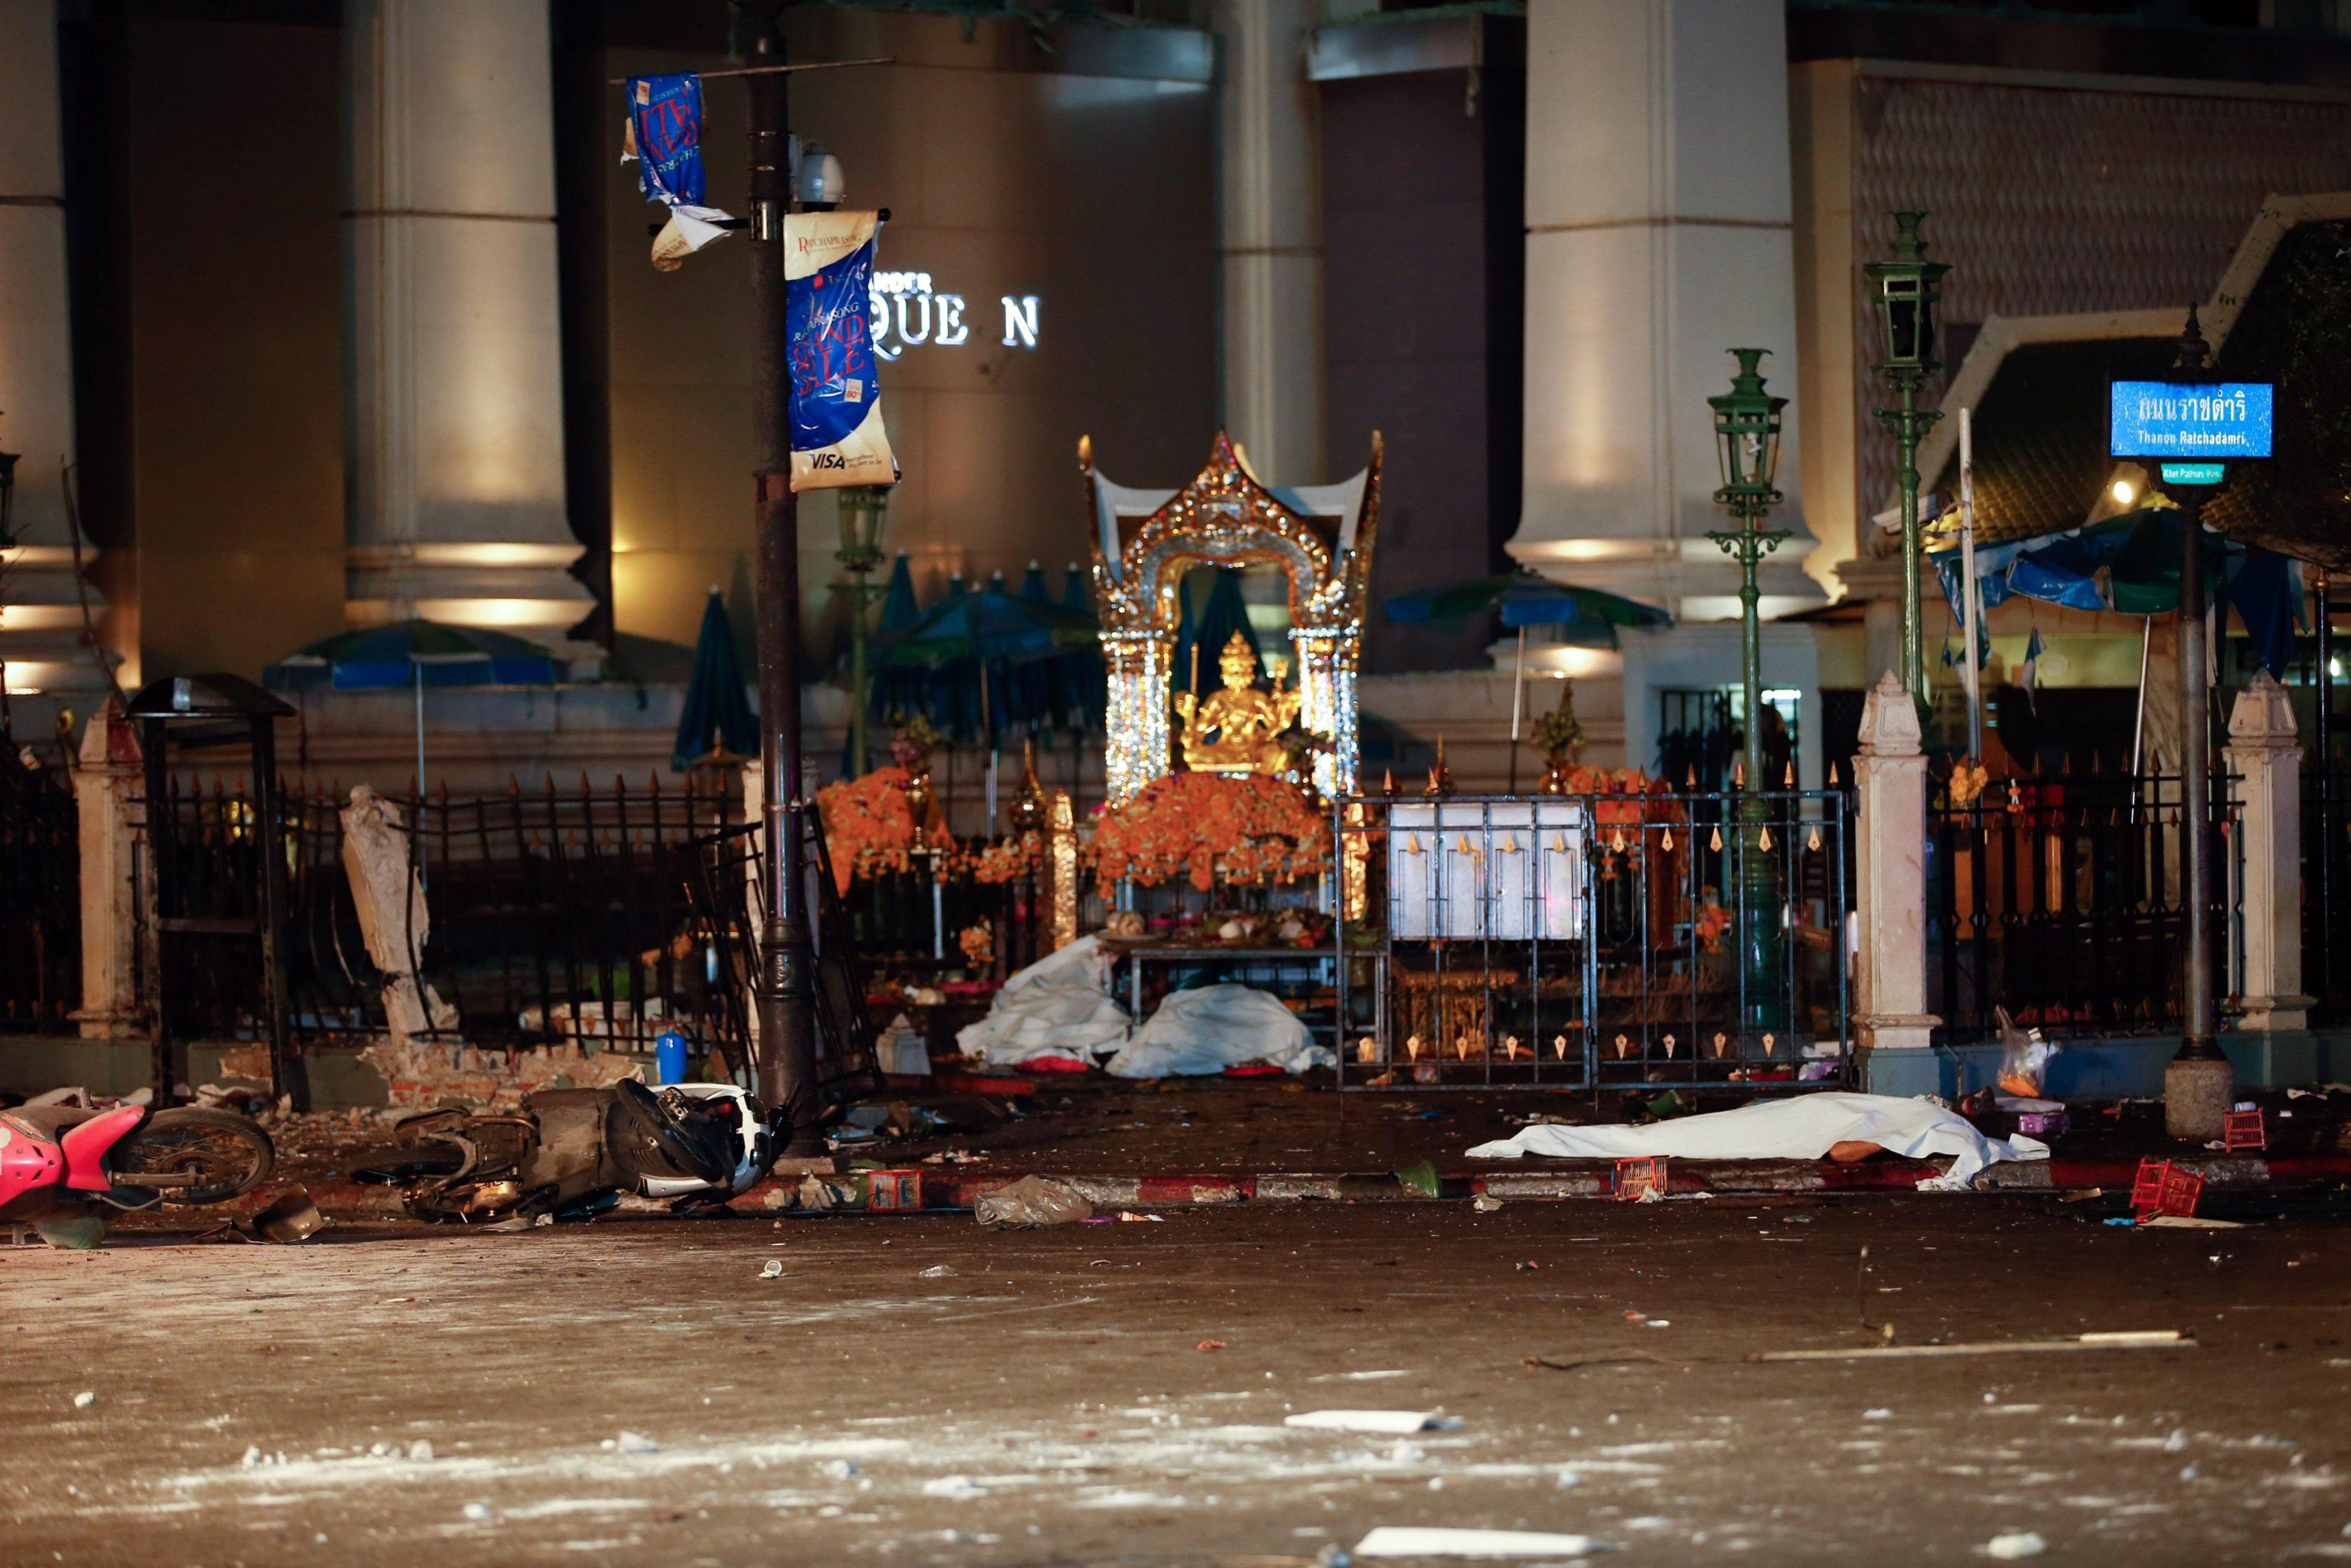 A body lies covered on the ground at the scene of a bomb attack near Erawan Shrine